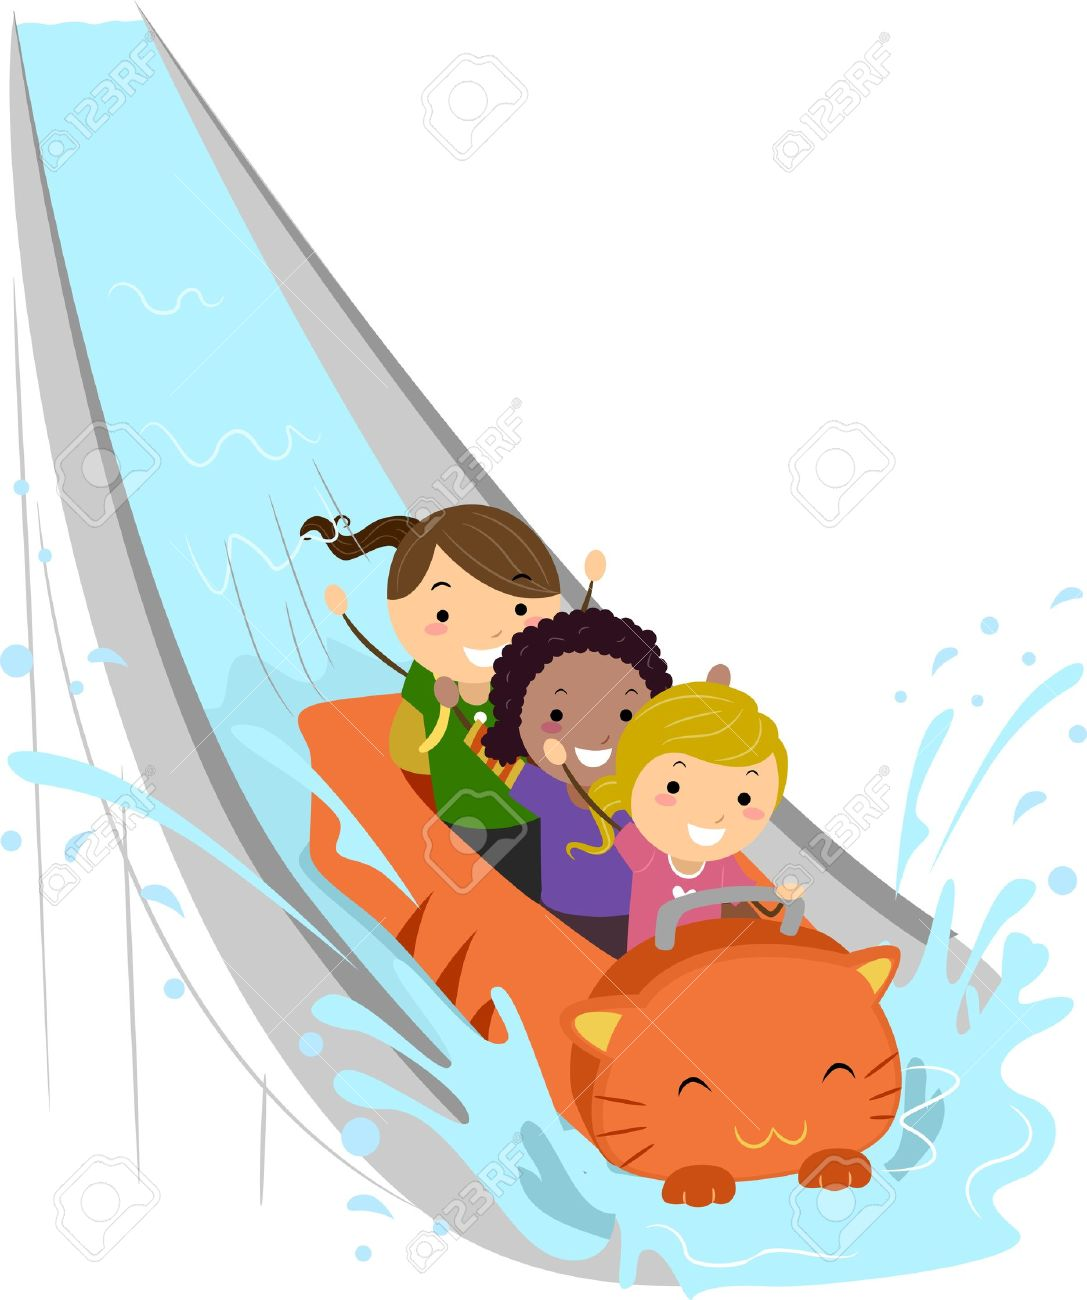 Water rides clipart.